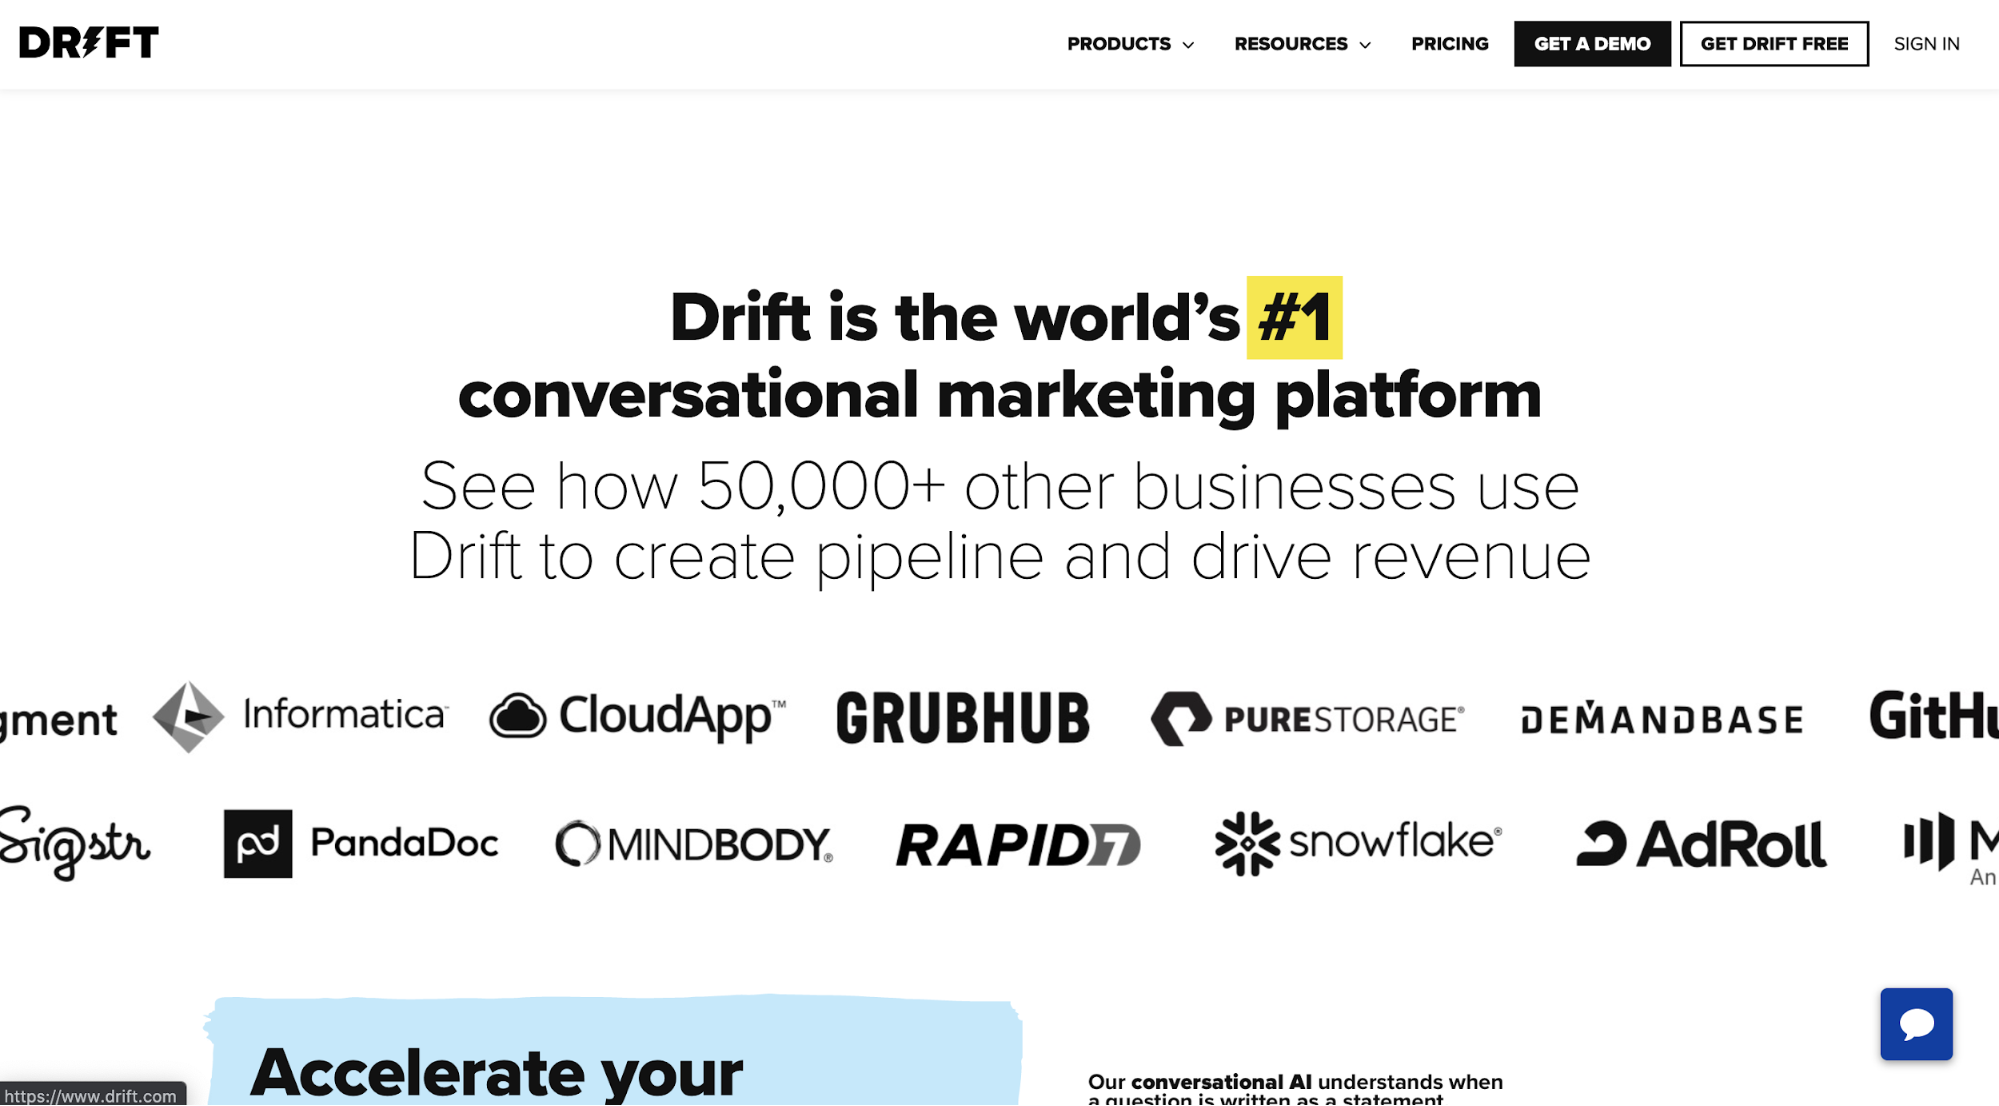 Message on the Drift homepage boasting about their position in their category.